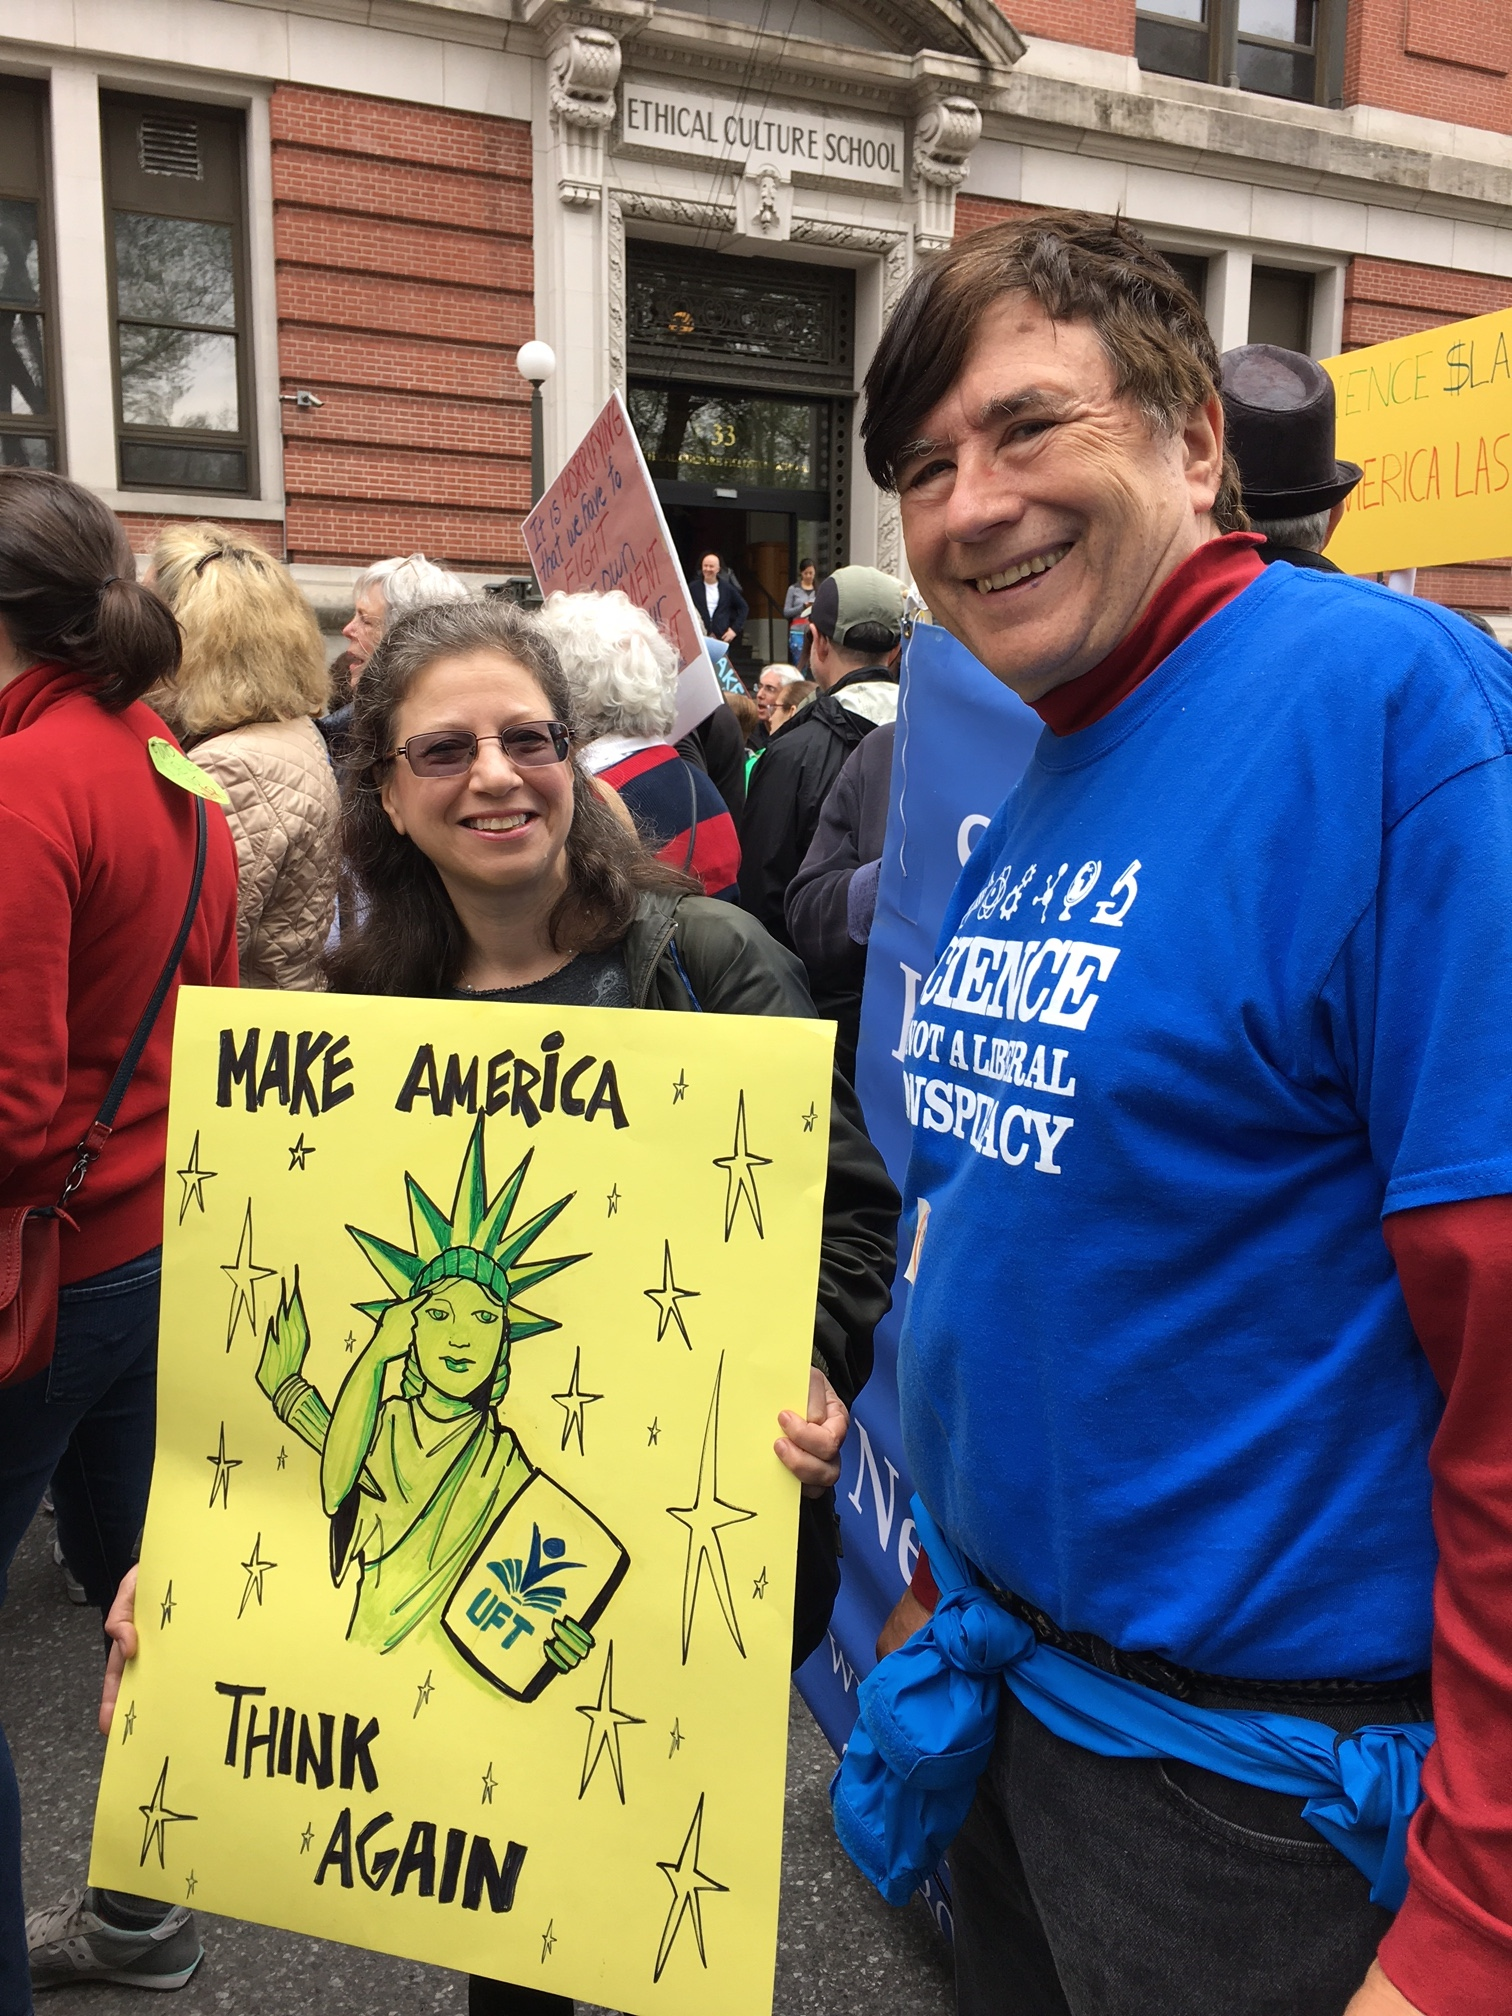 John Wagner at the March for Science